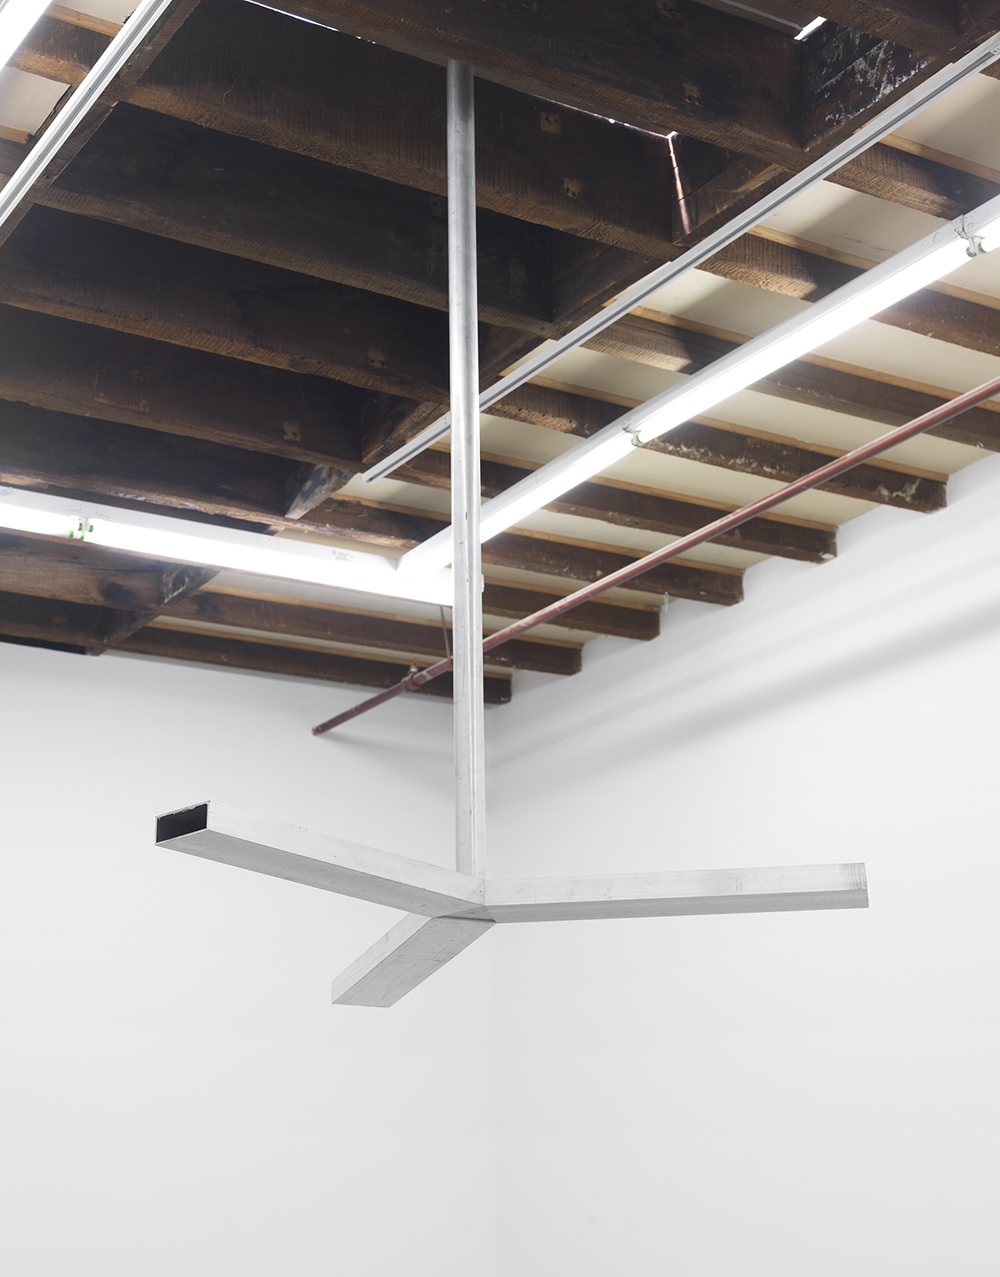 Untitled (propeller), 2015 Aluminum 64 x 50 x 50 inches